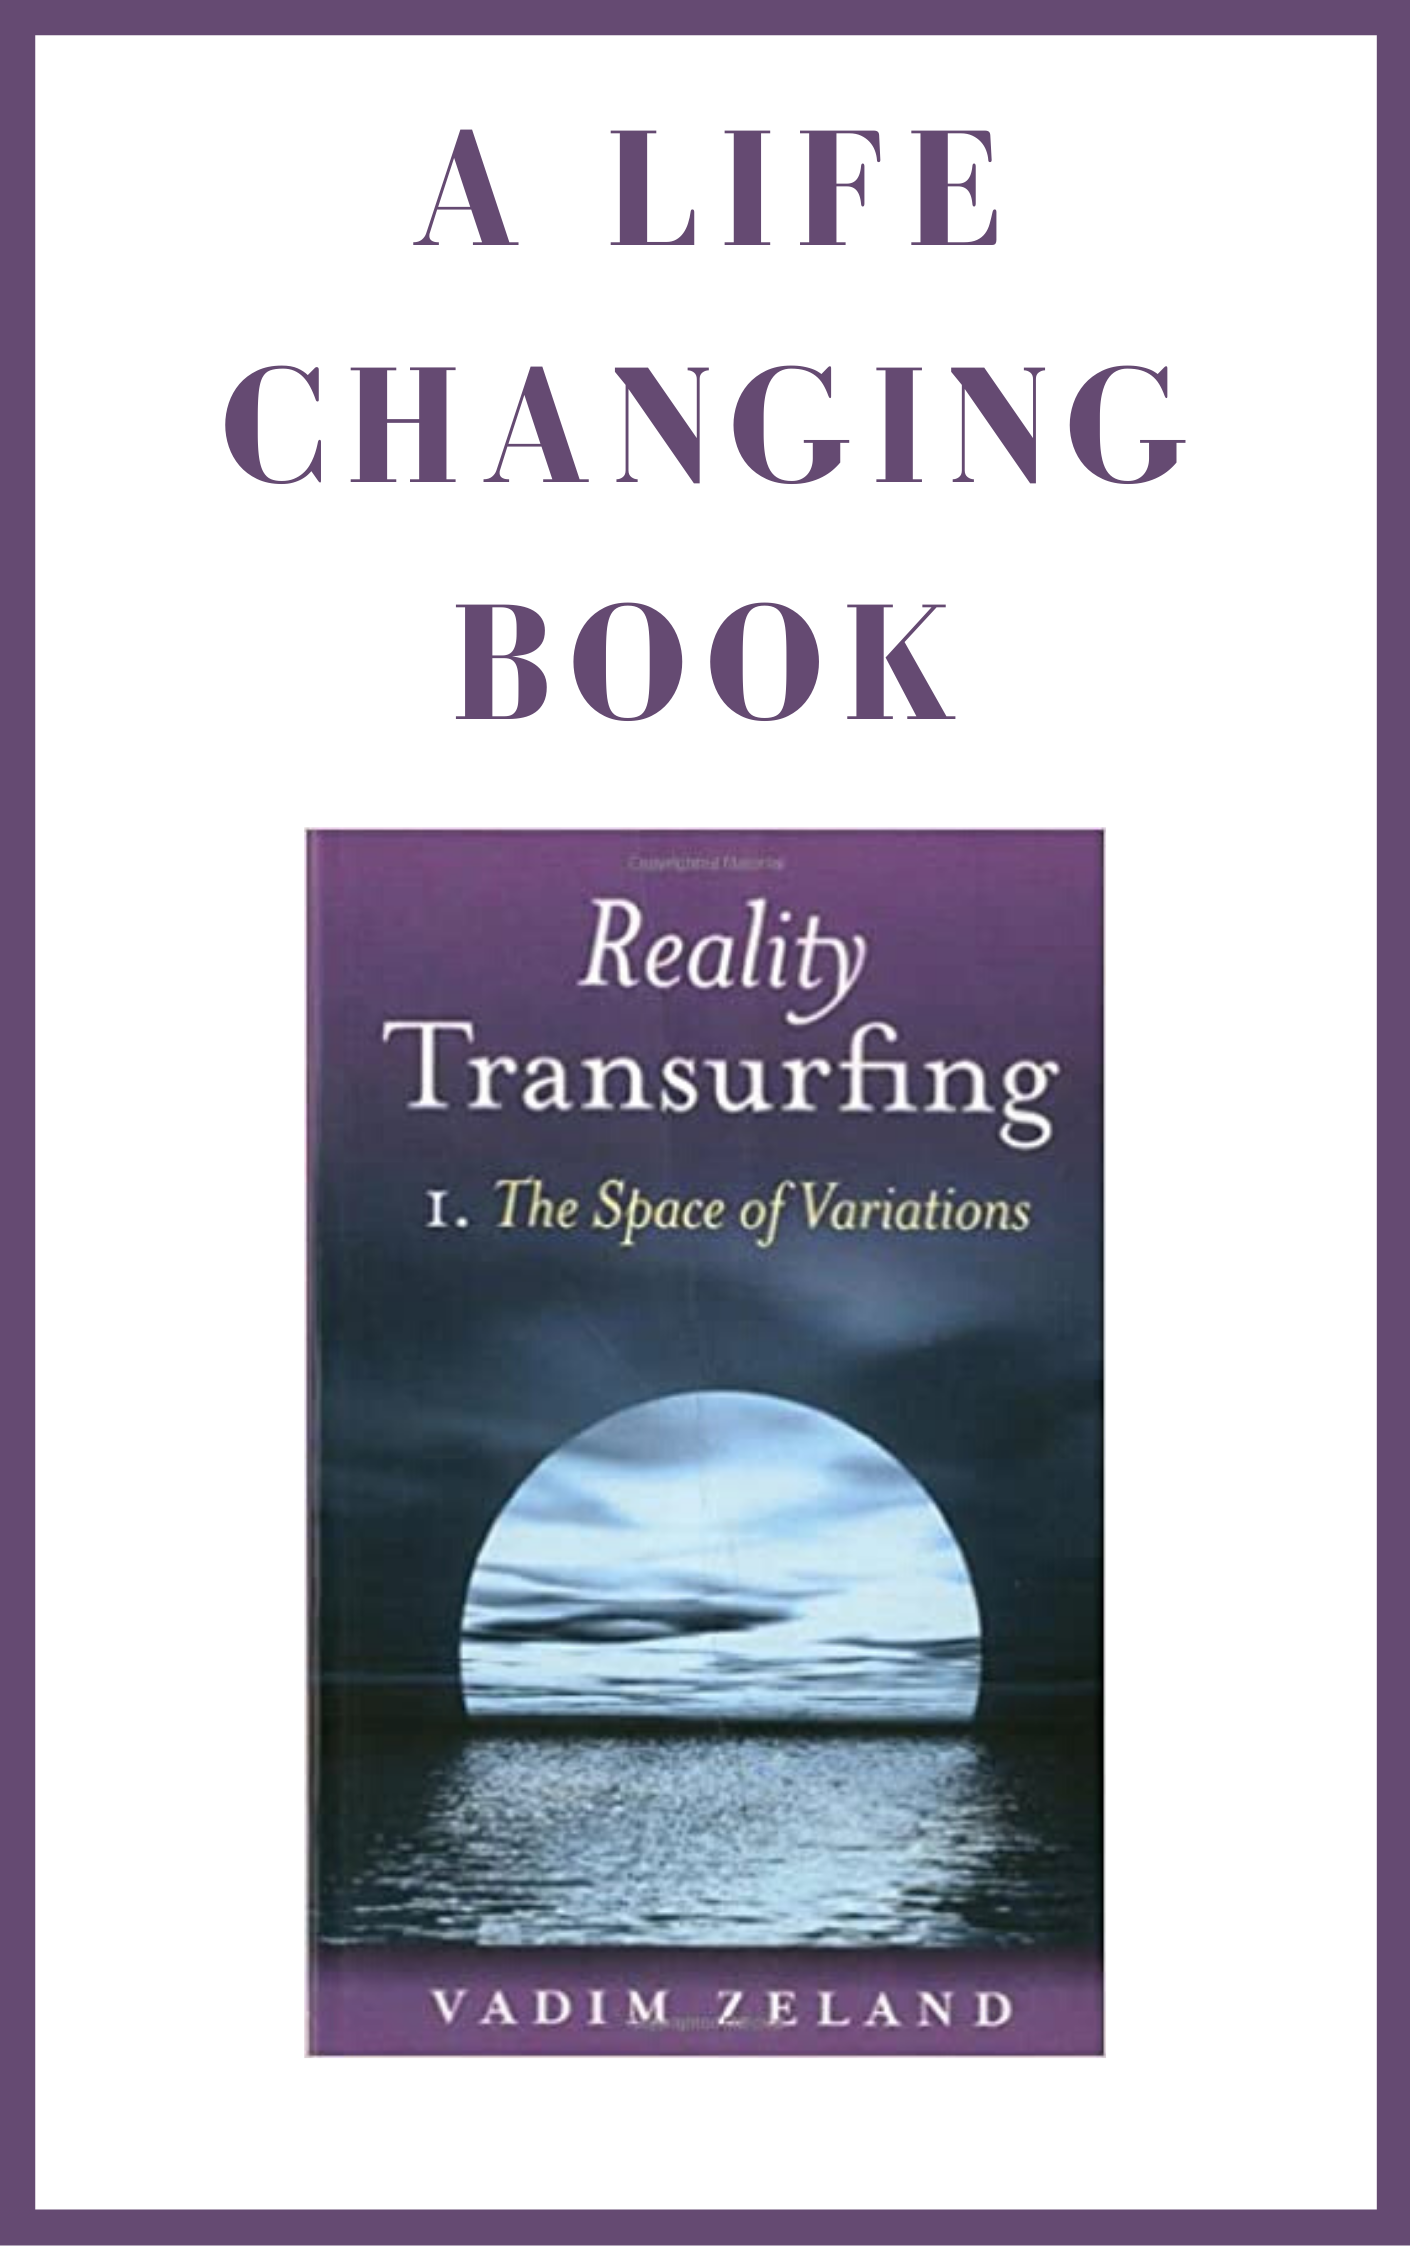 The first volume of Reality Transurfing, the top non-fiction bestellers in the world in 2005 and 2006. It describes a new way of looking at reality, indeed of creating it.  #book #books #lifechanging #selfdevelopment #vadimzeland #transurfing #thespaceofvibration #bestbooks2020 #books #bookstoread #lifechangingbooks #TBR #toberead #happinessbestself-helpbooks #selfdevelopmentbookspdf #bestselfimprovementbooksofalltime